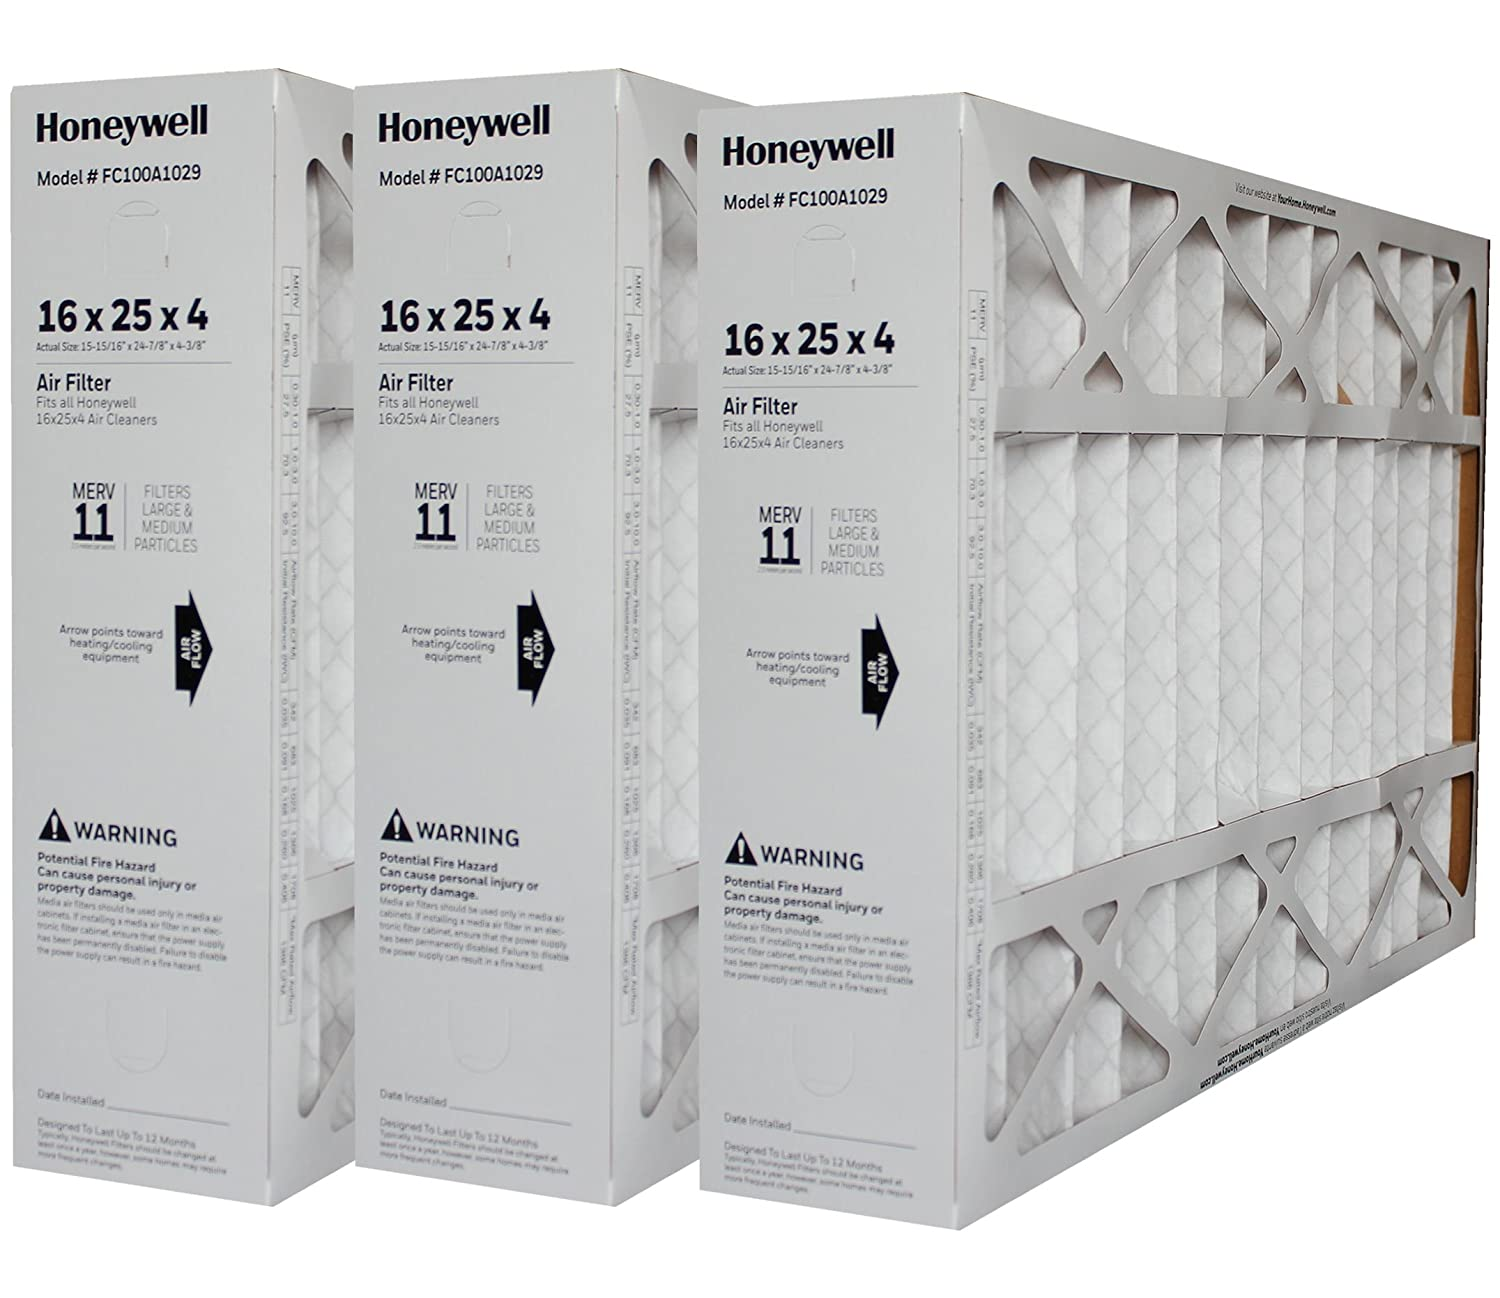 LENNOX 6670 REPLACEMENT FILTERS - HONEYWELL GENUINE 16X25 FC100A1029 MERV11 FILTER 15 7/8 x 24 3/4 x 4 3/8; PACK OF 3 FILTERS - Case of 3 Filters